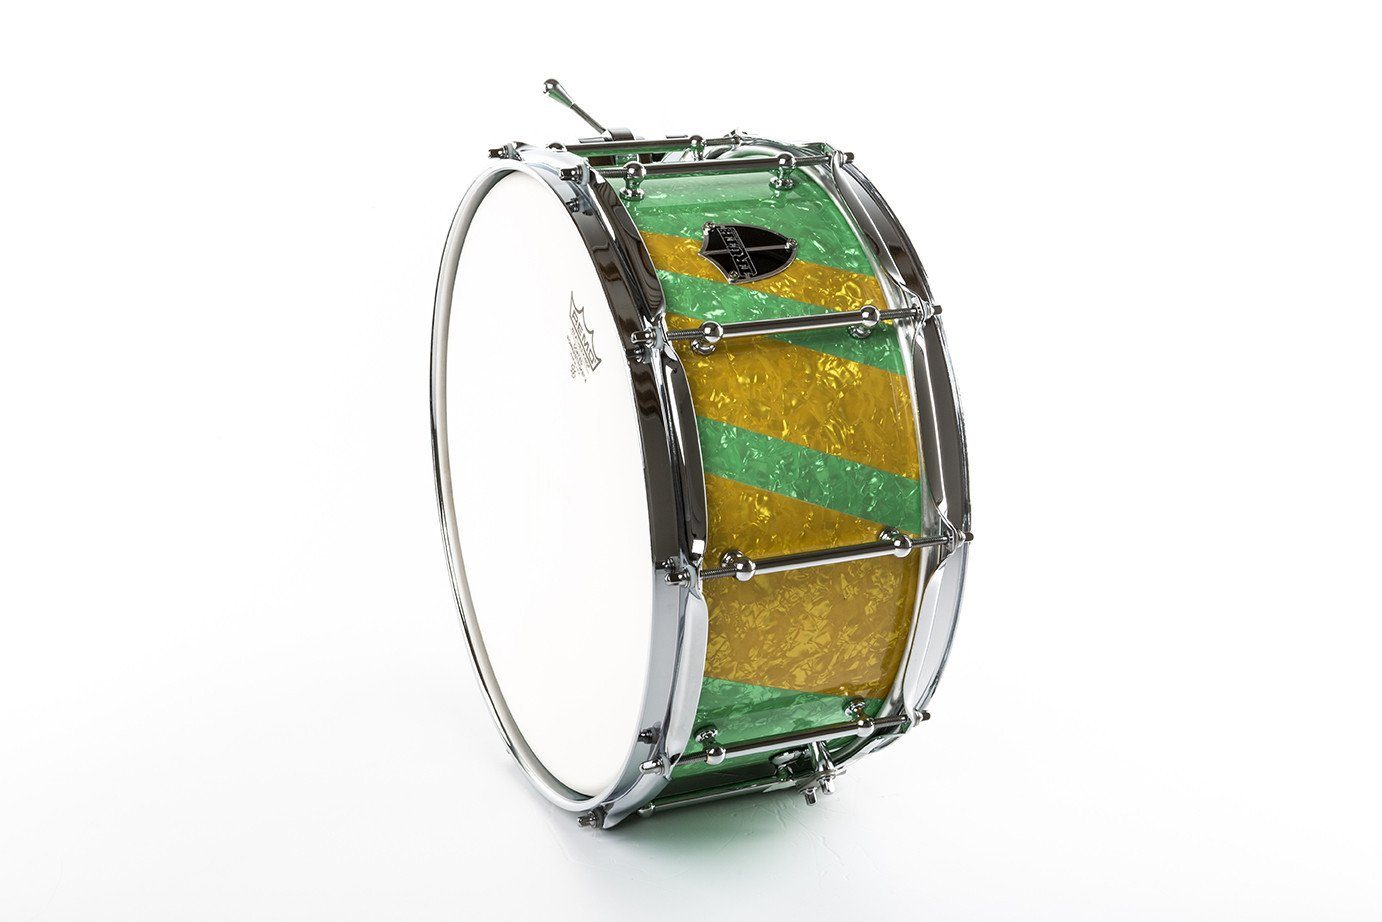 Truth Custom Drums The Green Machine 14x6 5 10ply Maple